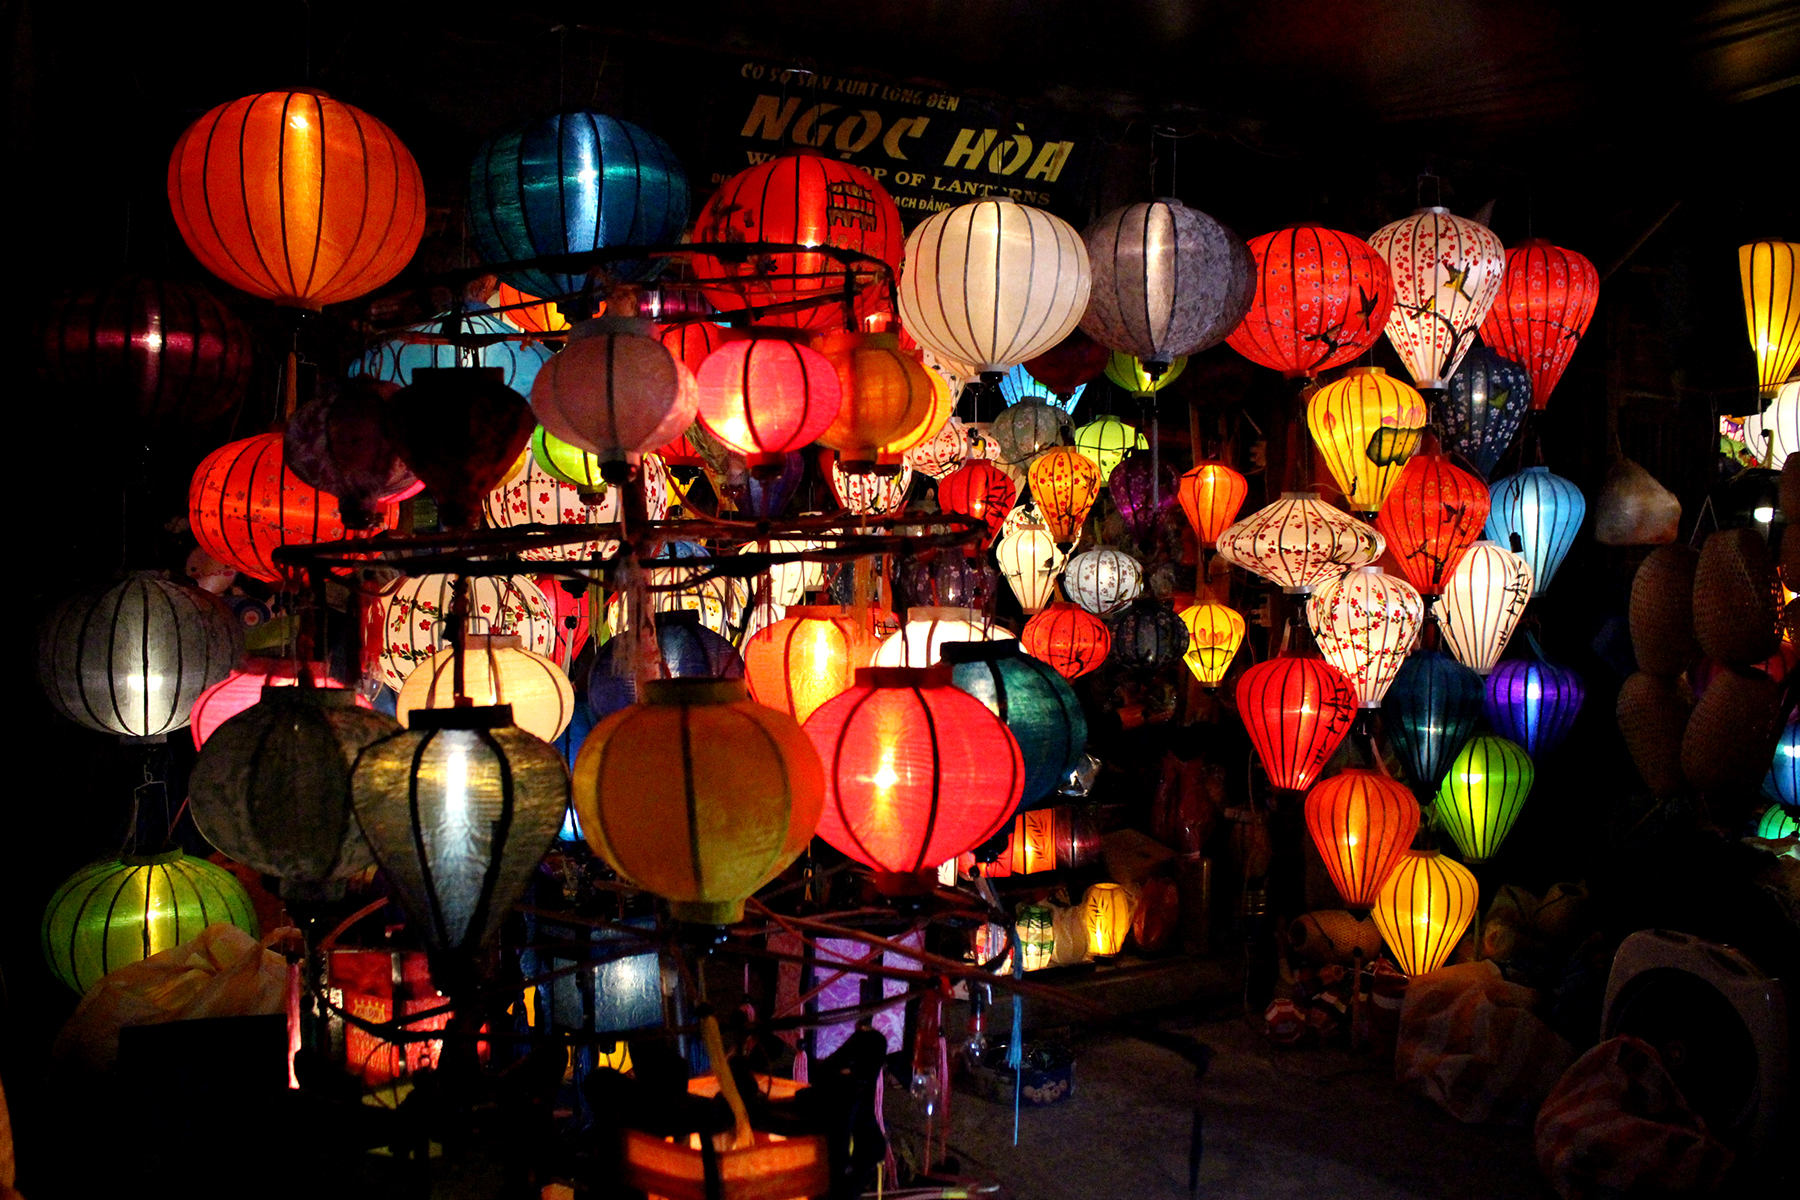 Lights, Colors and Magic in Hoi An